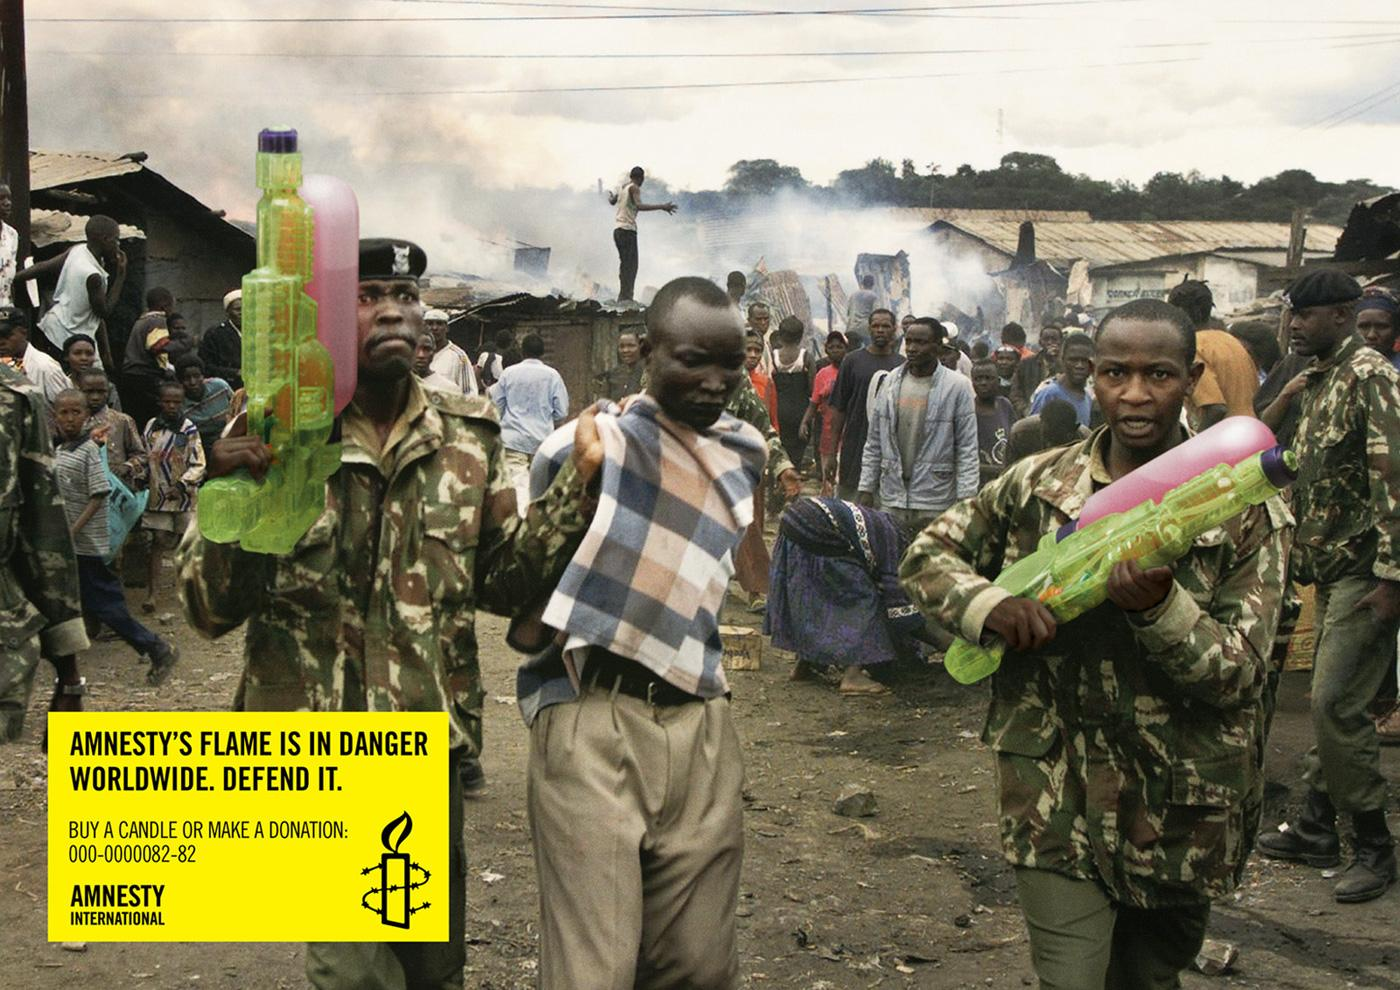 Amnesty International Print Ad -  Amnesty's flame is in danger worldwide, Africa